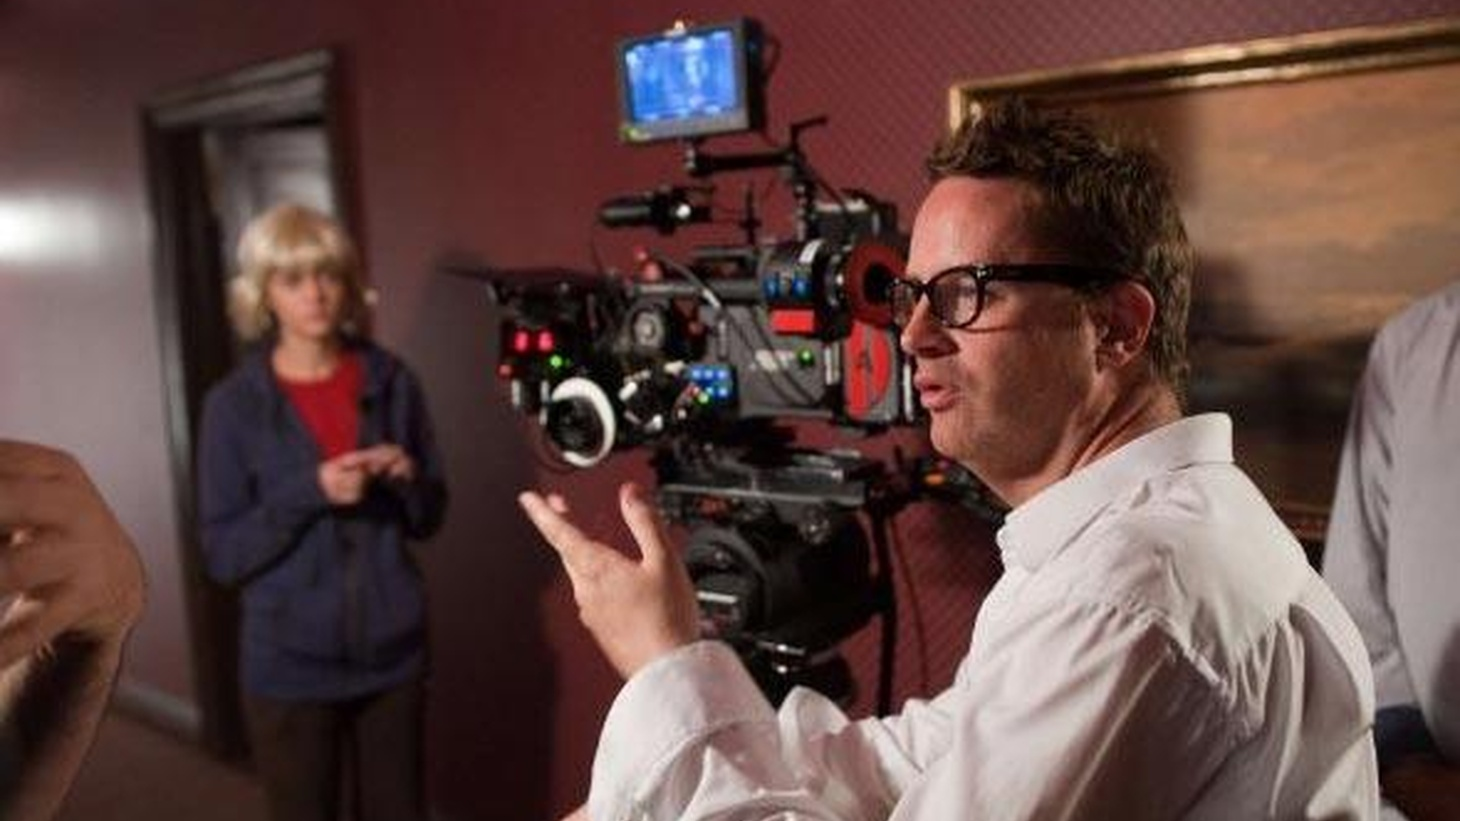 Director Nicolas Winding Refn talks with host Elvis Mitchell about his new film, Drive, starring Ryan Gosling.